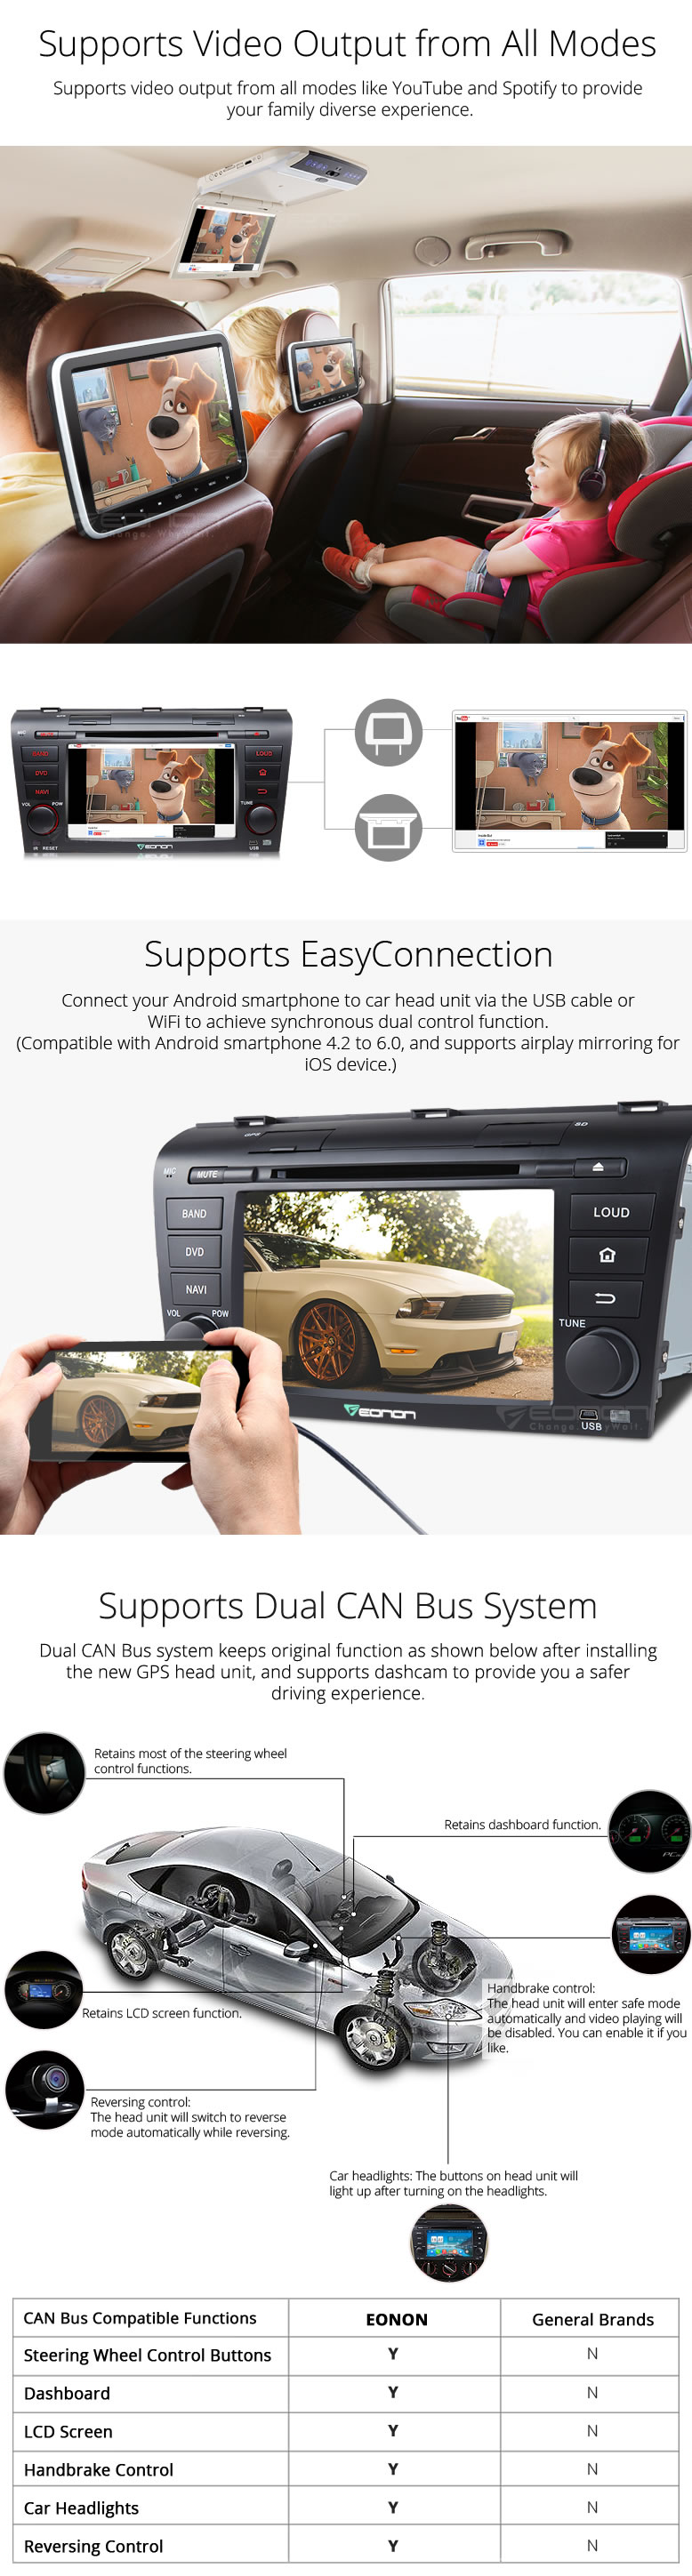 Perfect Eonon Android 6.0 2GB 8Core Octa Core Car DVD Player Stereo GPS Navigation Head Unit WIFI 3G USB for Mazda 3 2004-2009 2